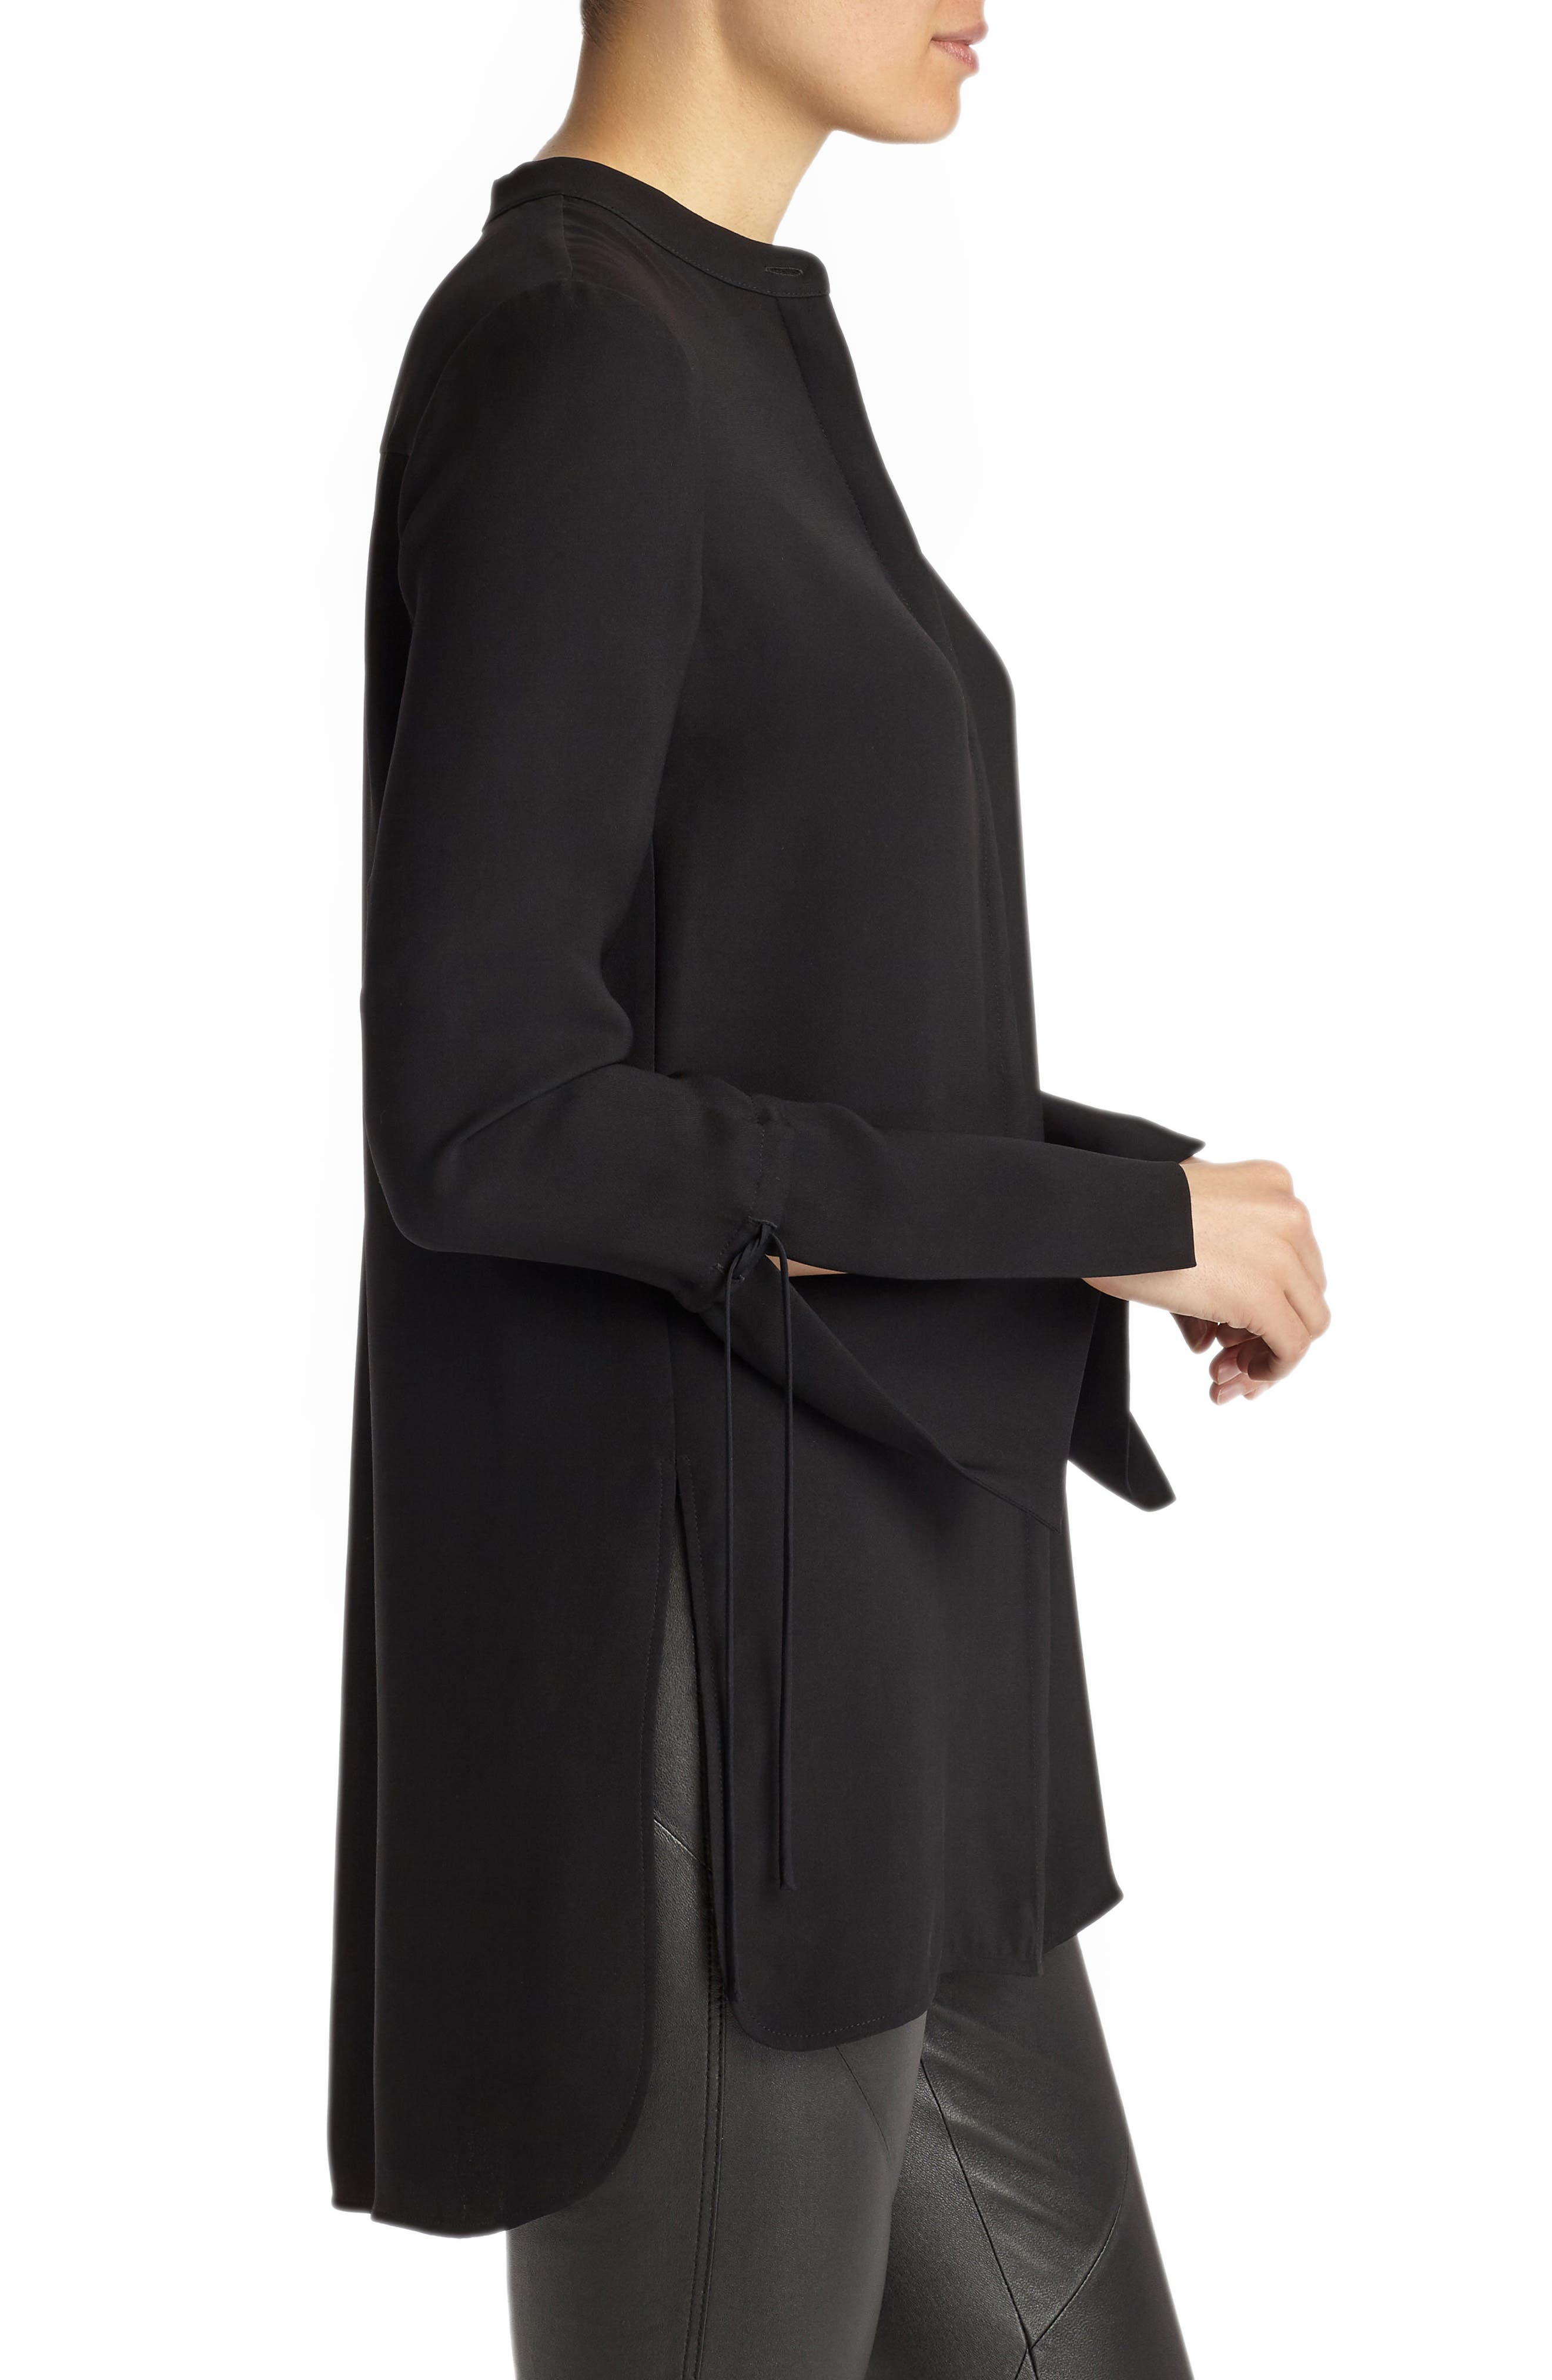 Desra Silk Blouse,                             Alternate thumbnail 3, color,                             Black